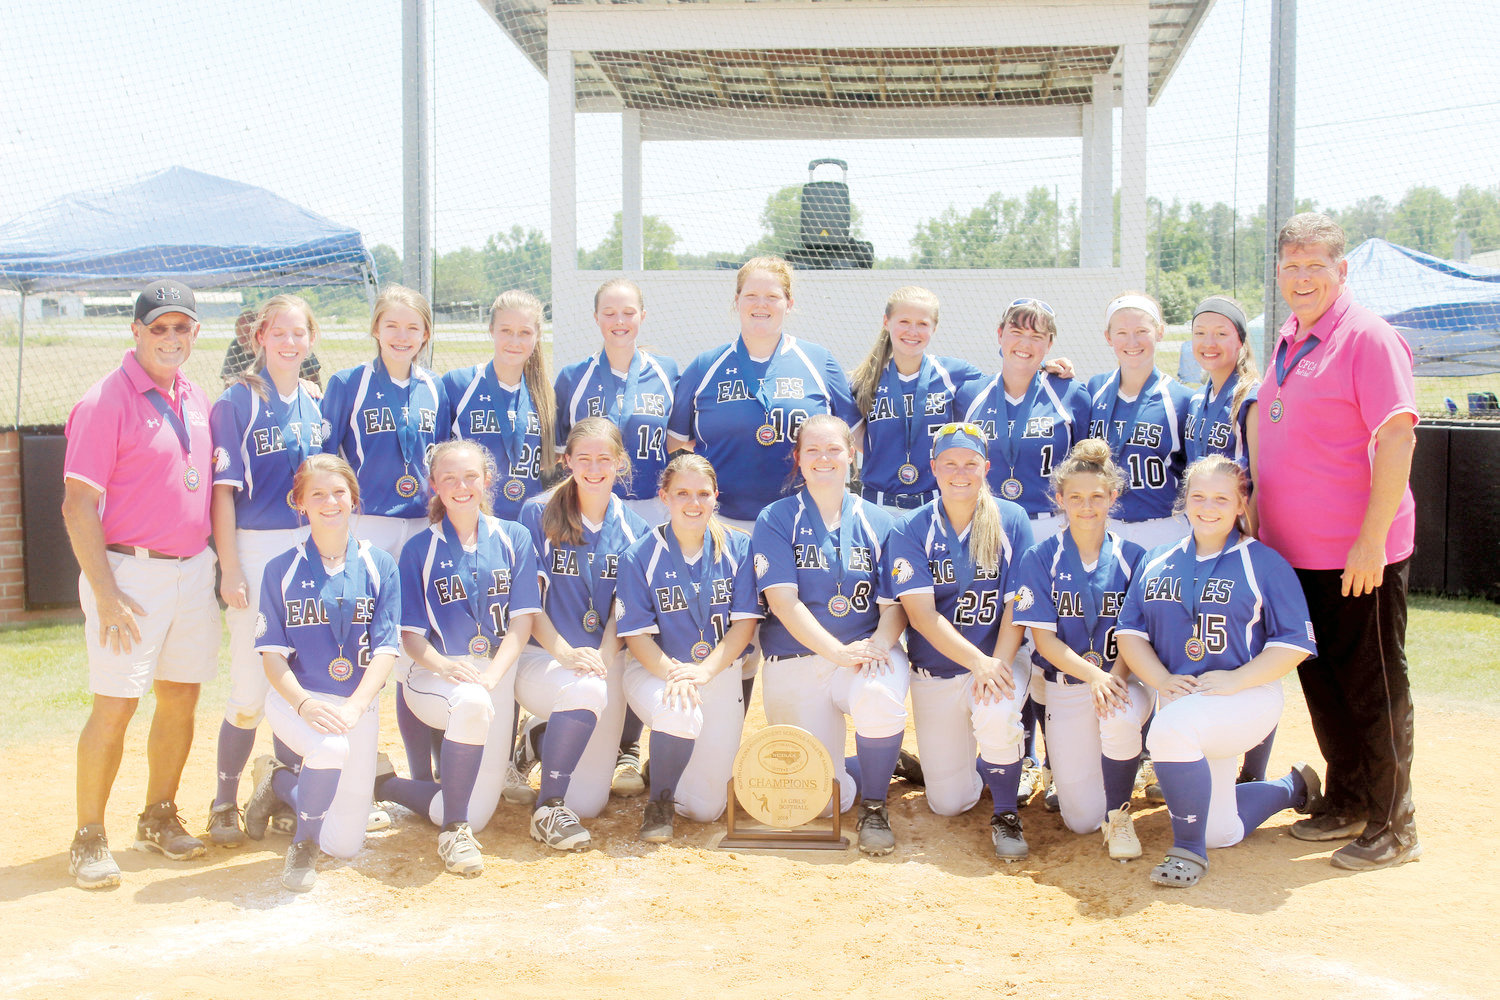 Cape Fear Christian Academy won this year's NCISAA 1A Softball Champion. Kneeling from left are Gabbi Chiodo, Anslee McLamb, Meghan Taylor, Jada Horne, Kristen Bass, Paige Jeffries, Harmony Horne and McKenzie Burris. Standing from left are coach Sterling Holmes, Claire Parker, Leah Brannon, Shelby Hodges, Rebekah Ennis, Aubree Bass, Averi Williams, Natalia Brocious, Rhyleigh Horne, Trinity Olive and assistant coach Craig Autry.